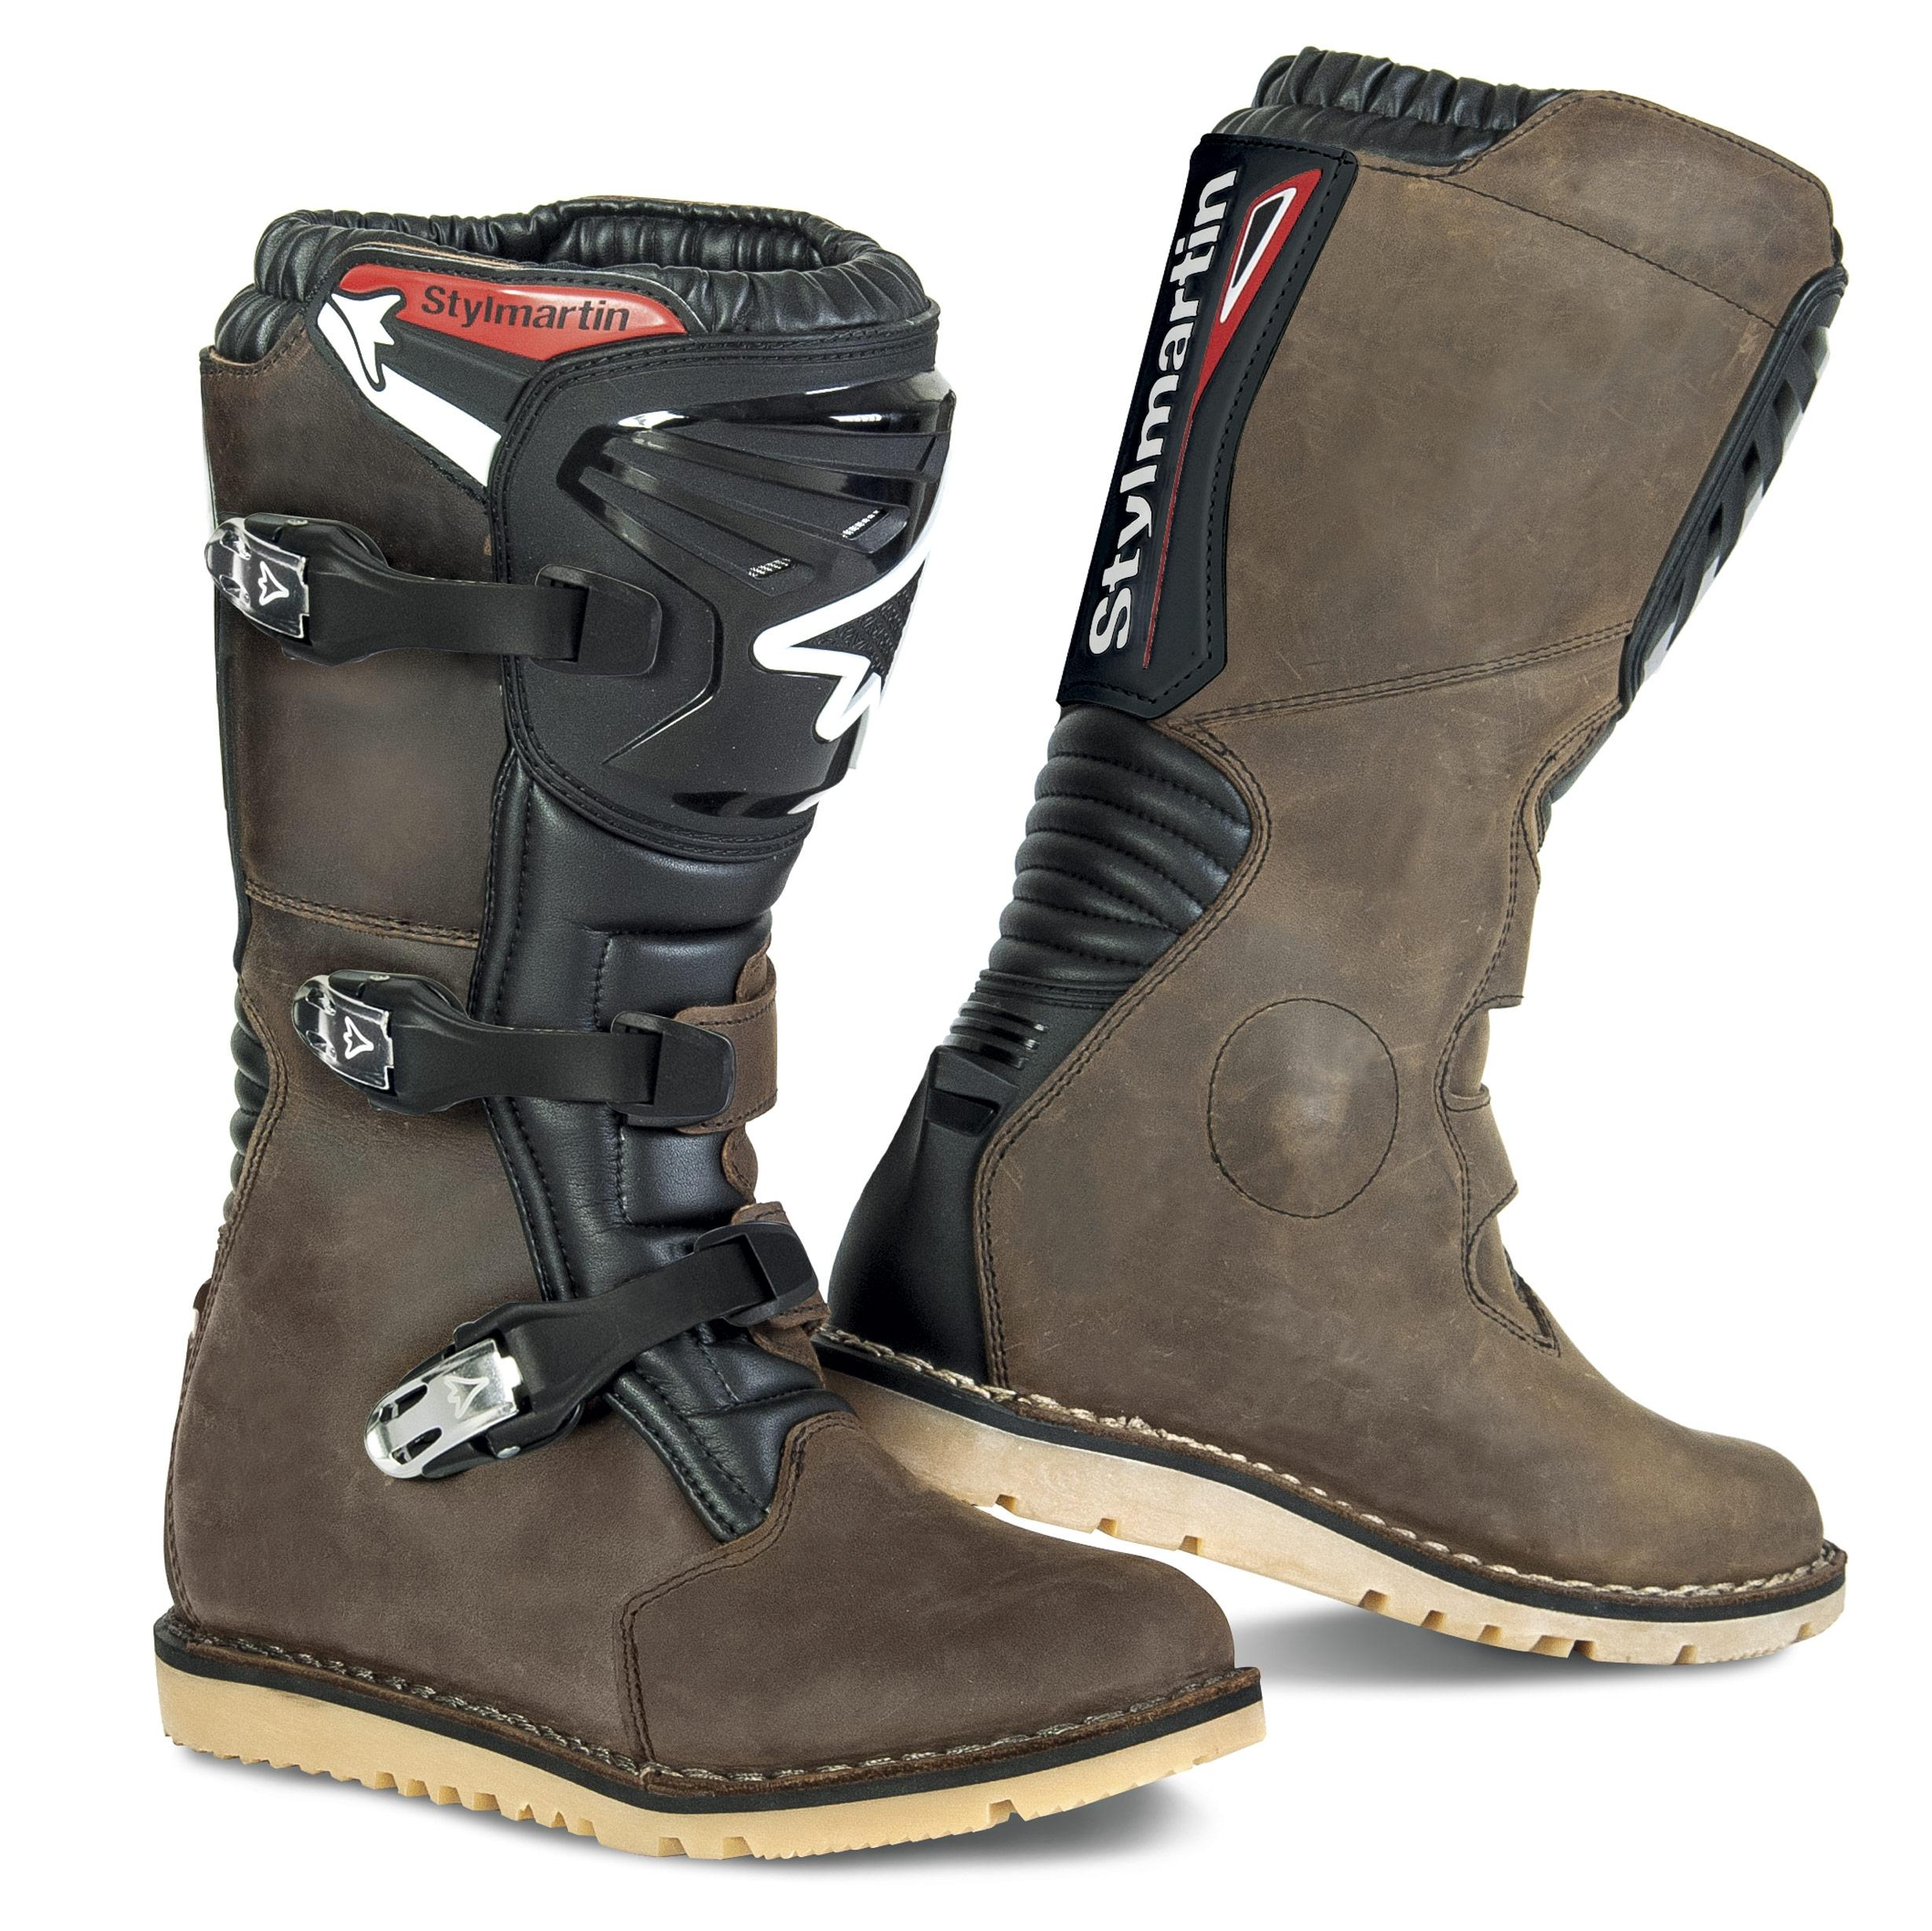 Stylmartin Impact RS Trial Boots Brown